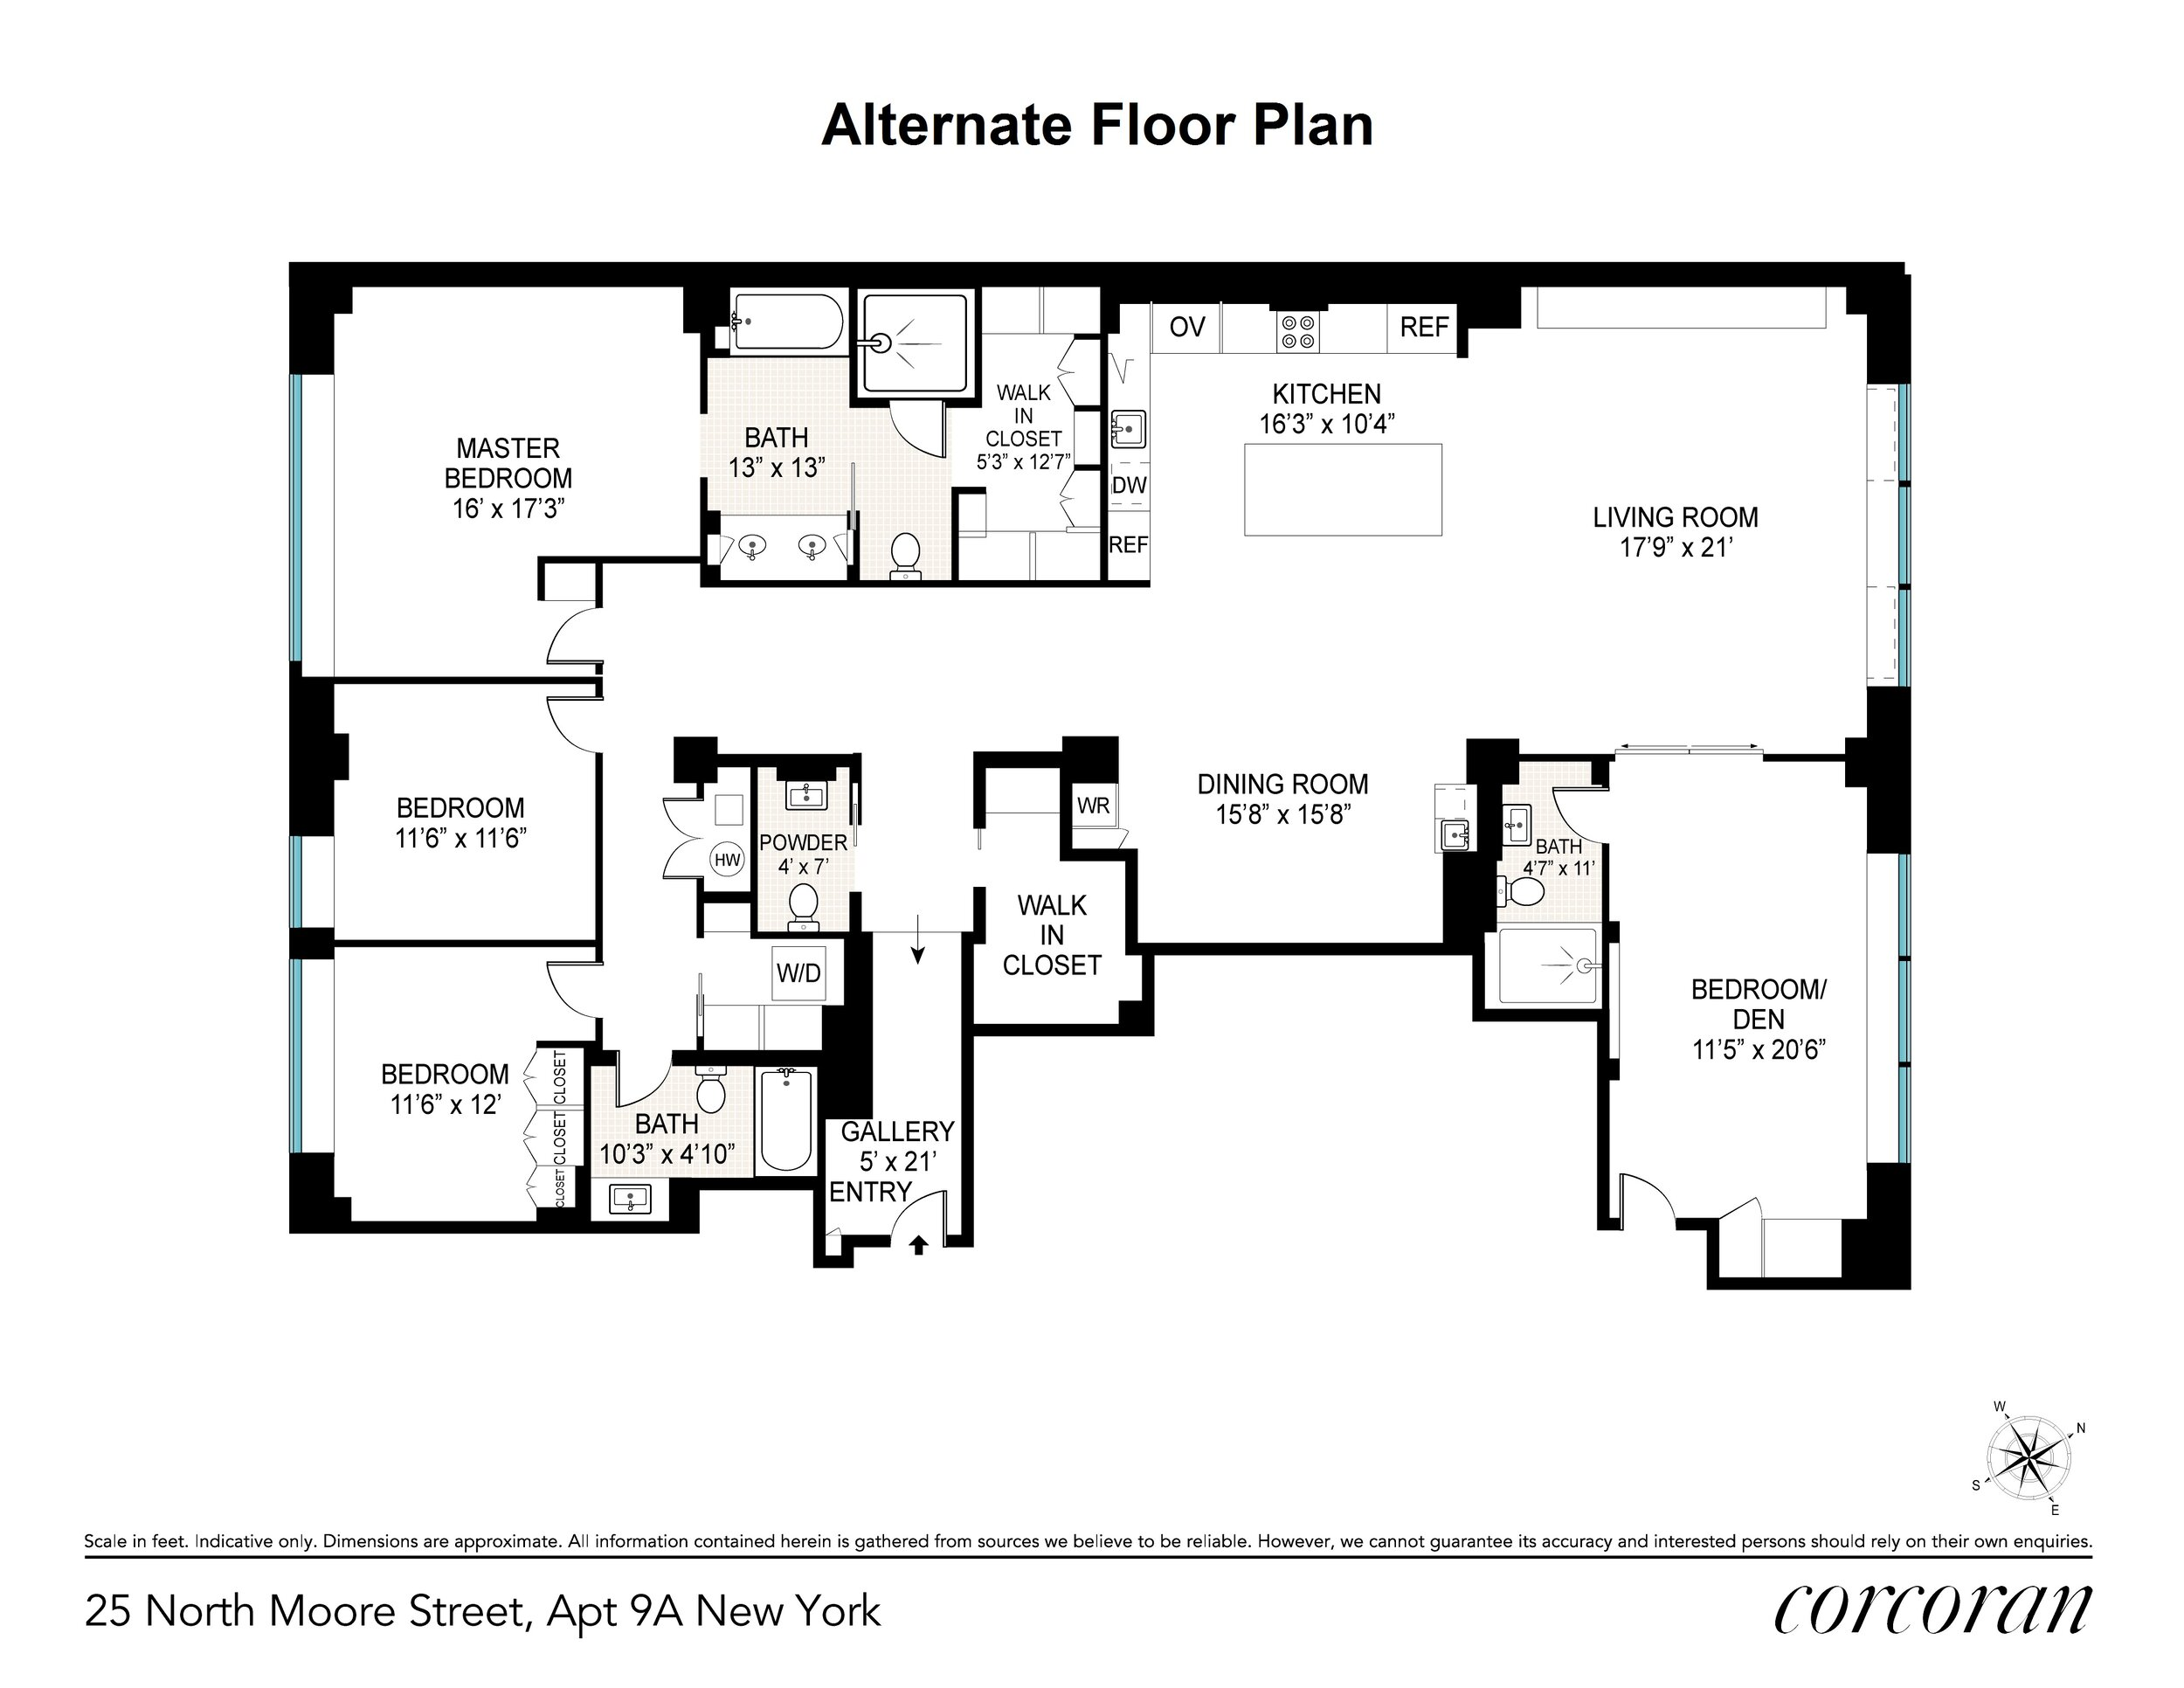 25_North_Moore_Street_Apt_9A_New_York_Alternate.jpg